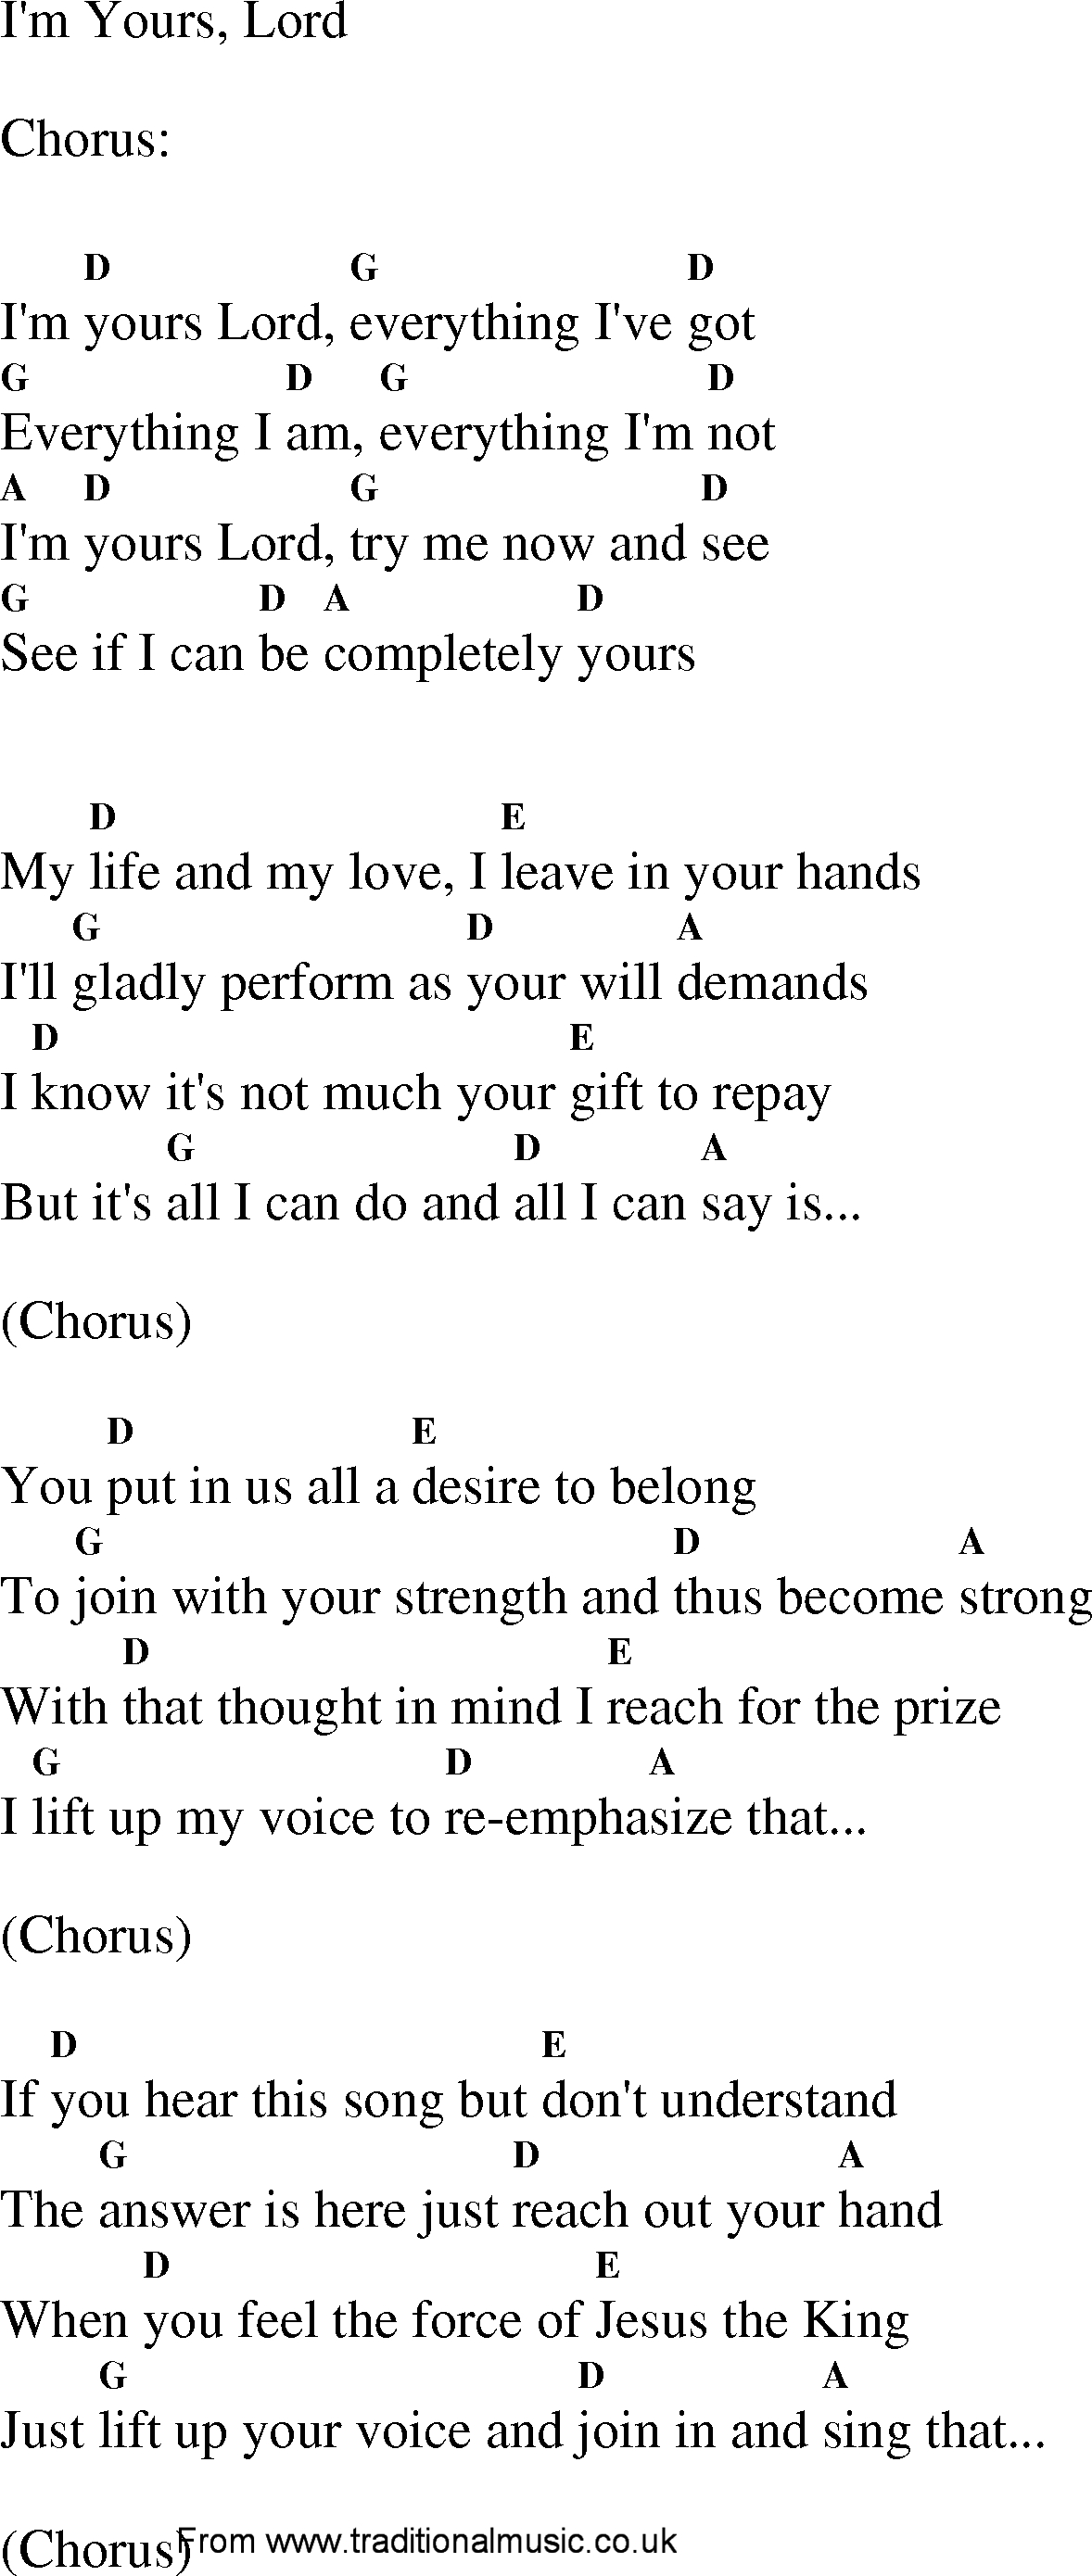 I M Yours Chords Christian Gospel Worship Song Lyrics With Chords Im Yours Lord